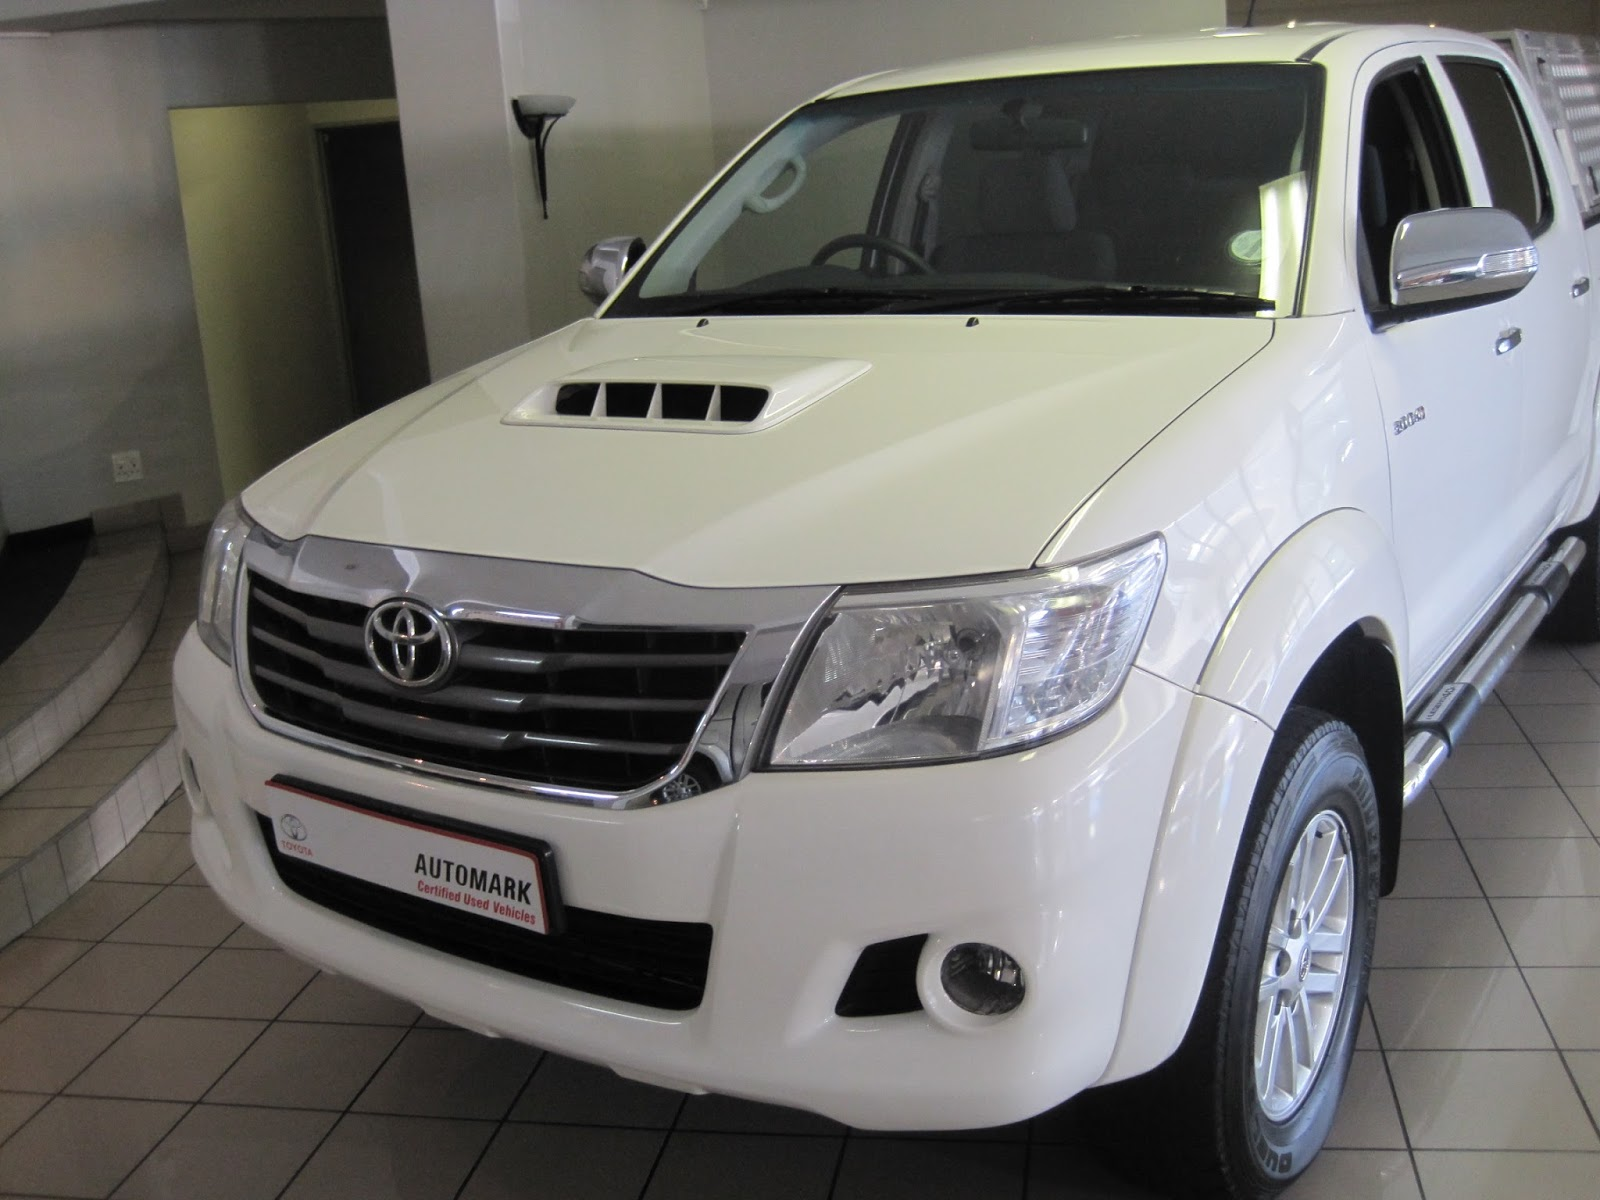 2 Hand Cars for Sale Fresh Gumtree Second Hand Vehicles for Sale Cape town Olx Car Dealer